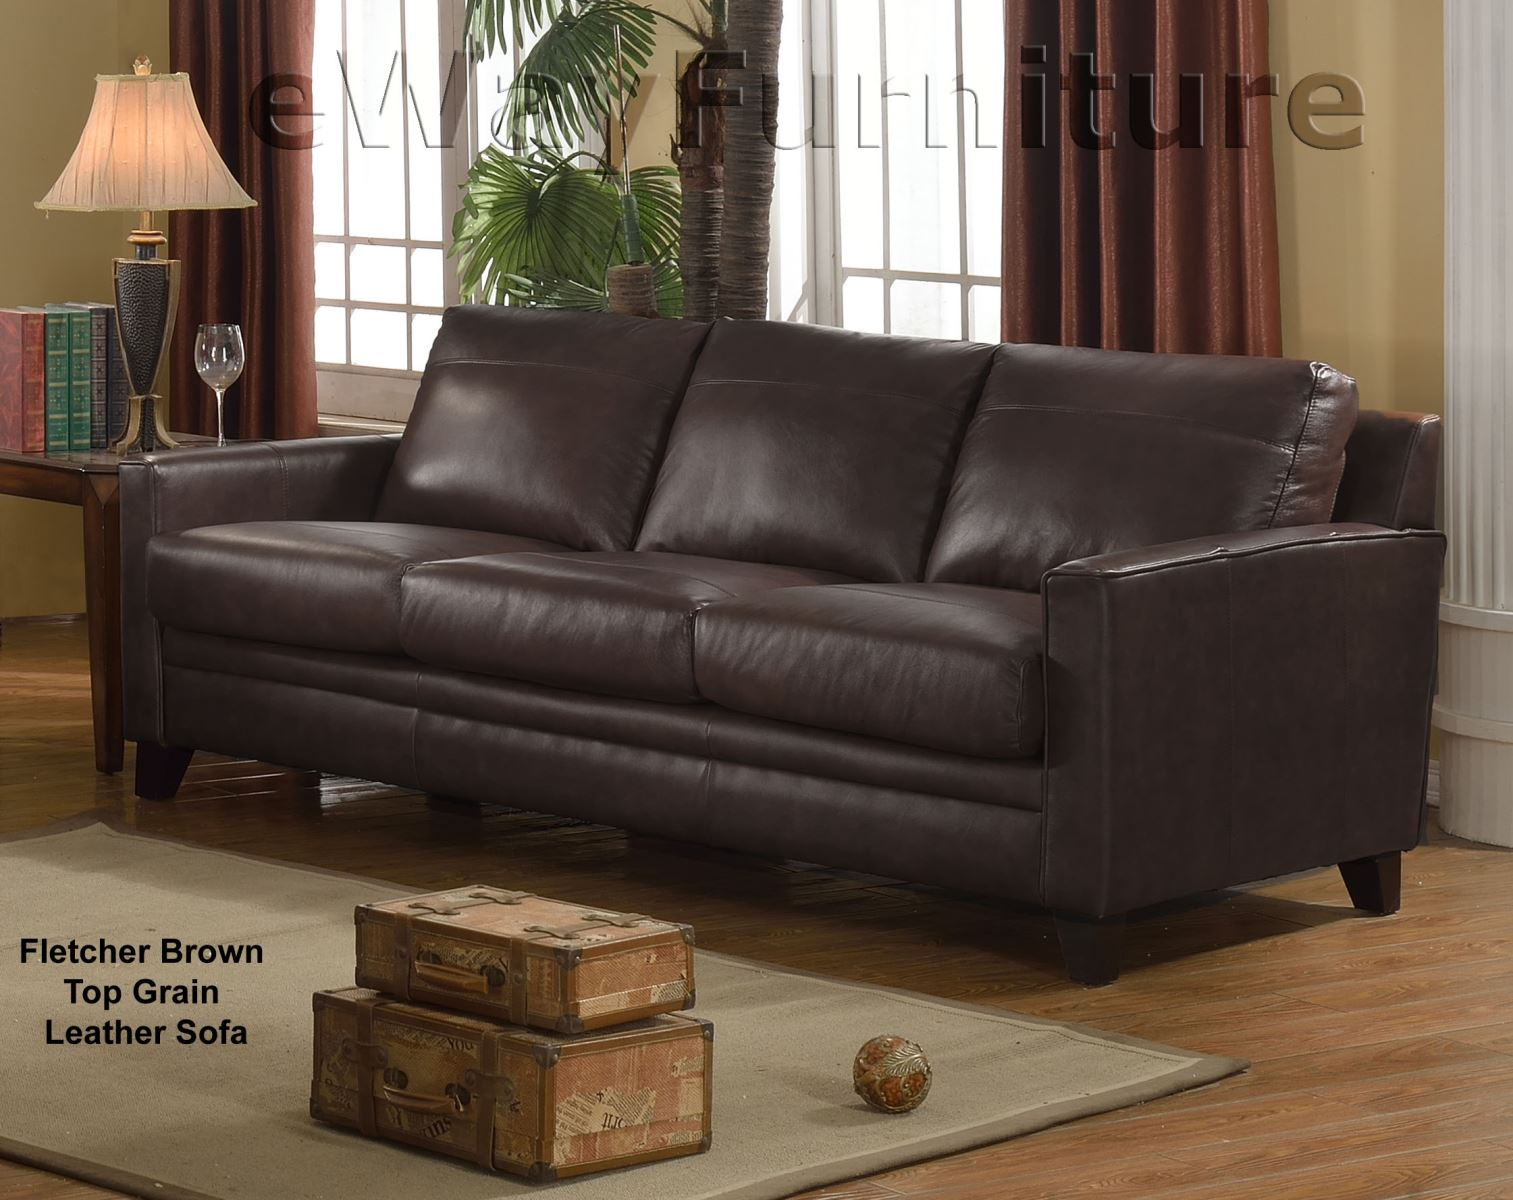 Ordinaire Similar Items. Fletcher Brown Top Grain Leather Loveseat